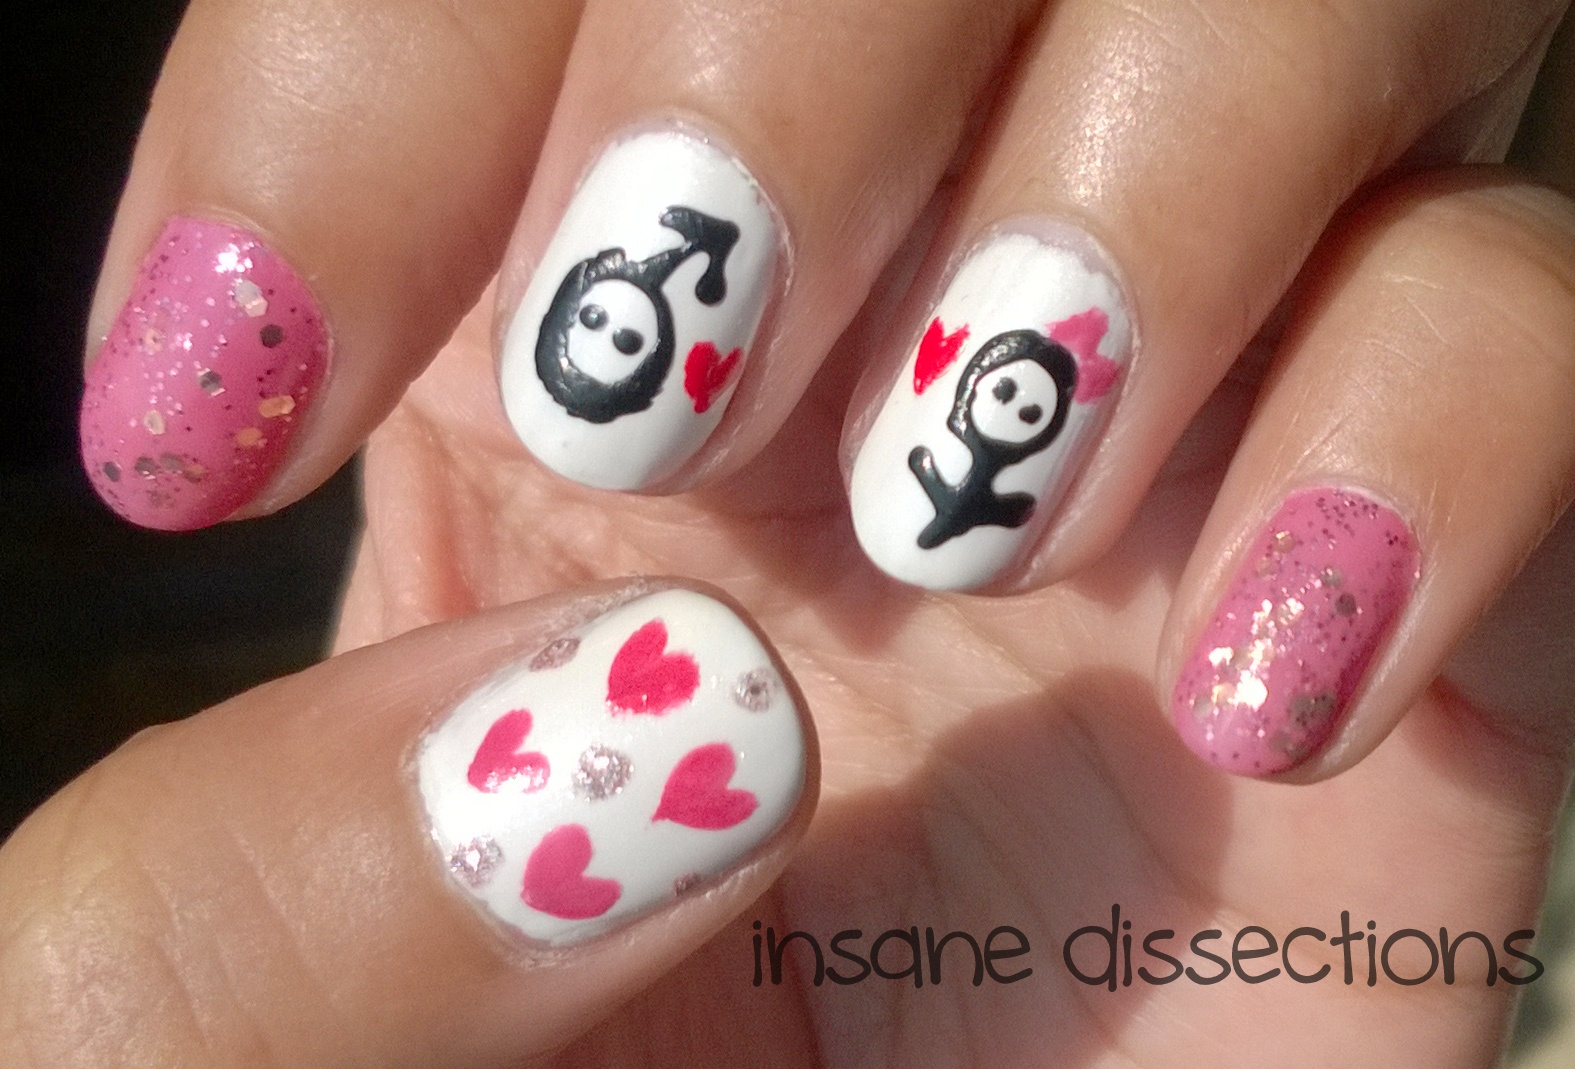 easy nail art | Insane Dissections